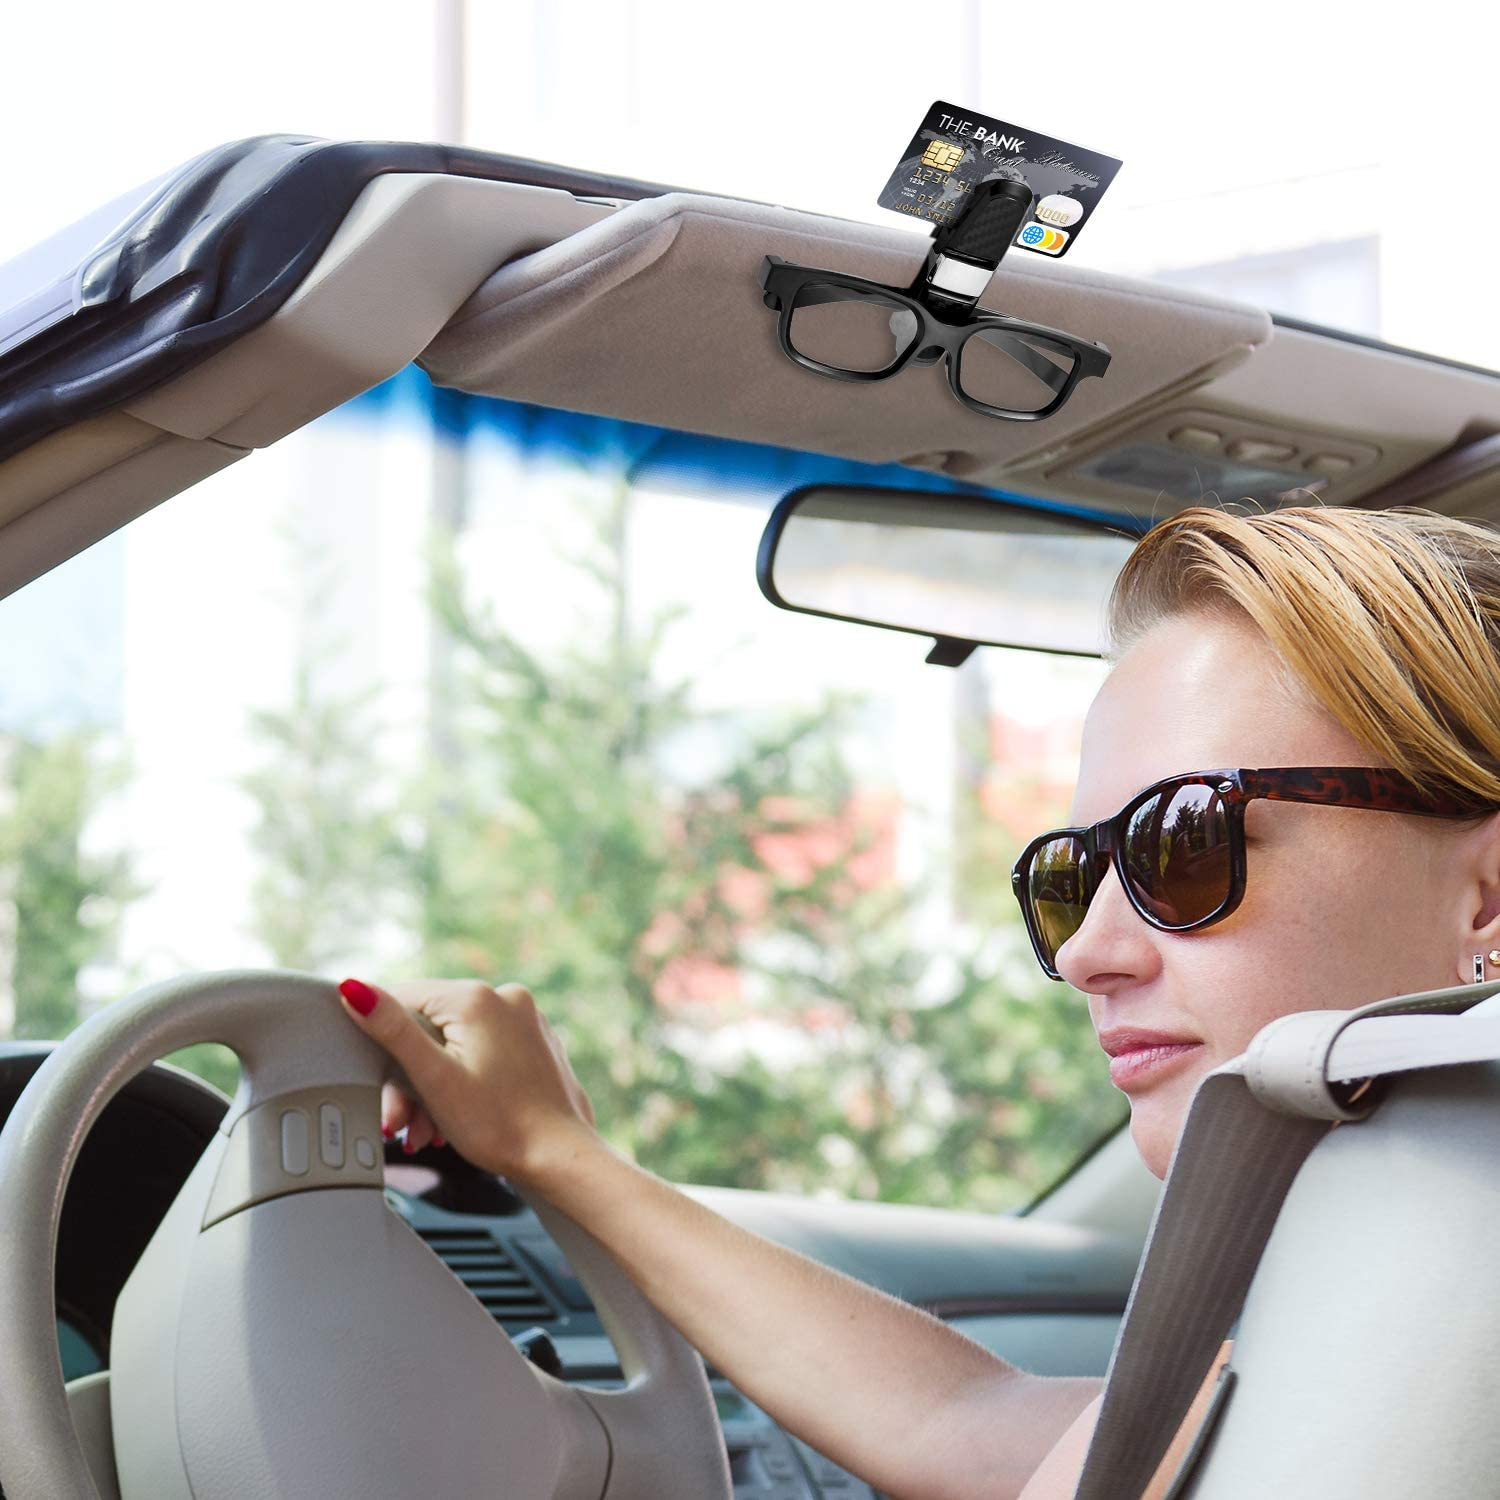 Double-Ends Clip and 180 Degree Rotational Car Glasses Holder with Ticket Card Clip Black, Silver Sunglasses Holder Clip Hanger Eyeglasses Mount for Car 2 Pieces Glasses Holders for Car Sun Visor